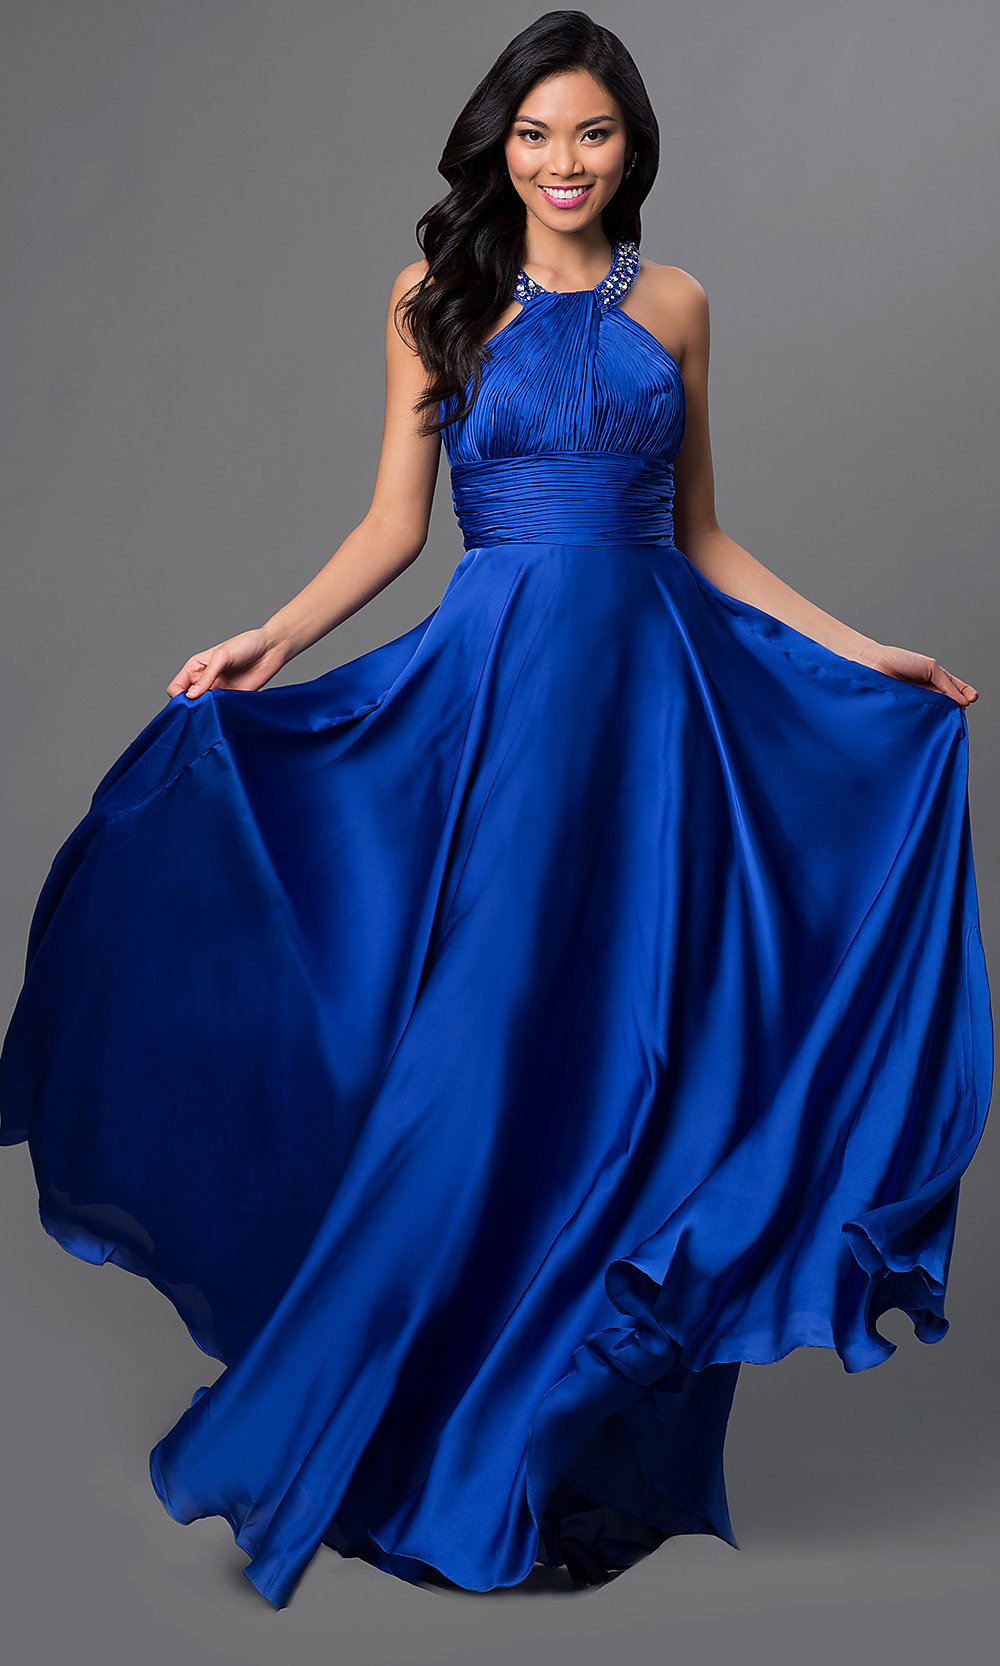 High Neck Long Halter Dress, Halter Gowns - PromGirl